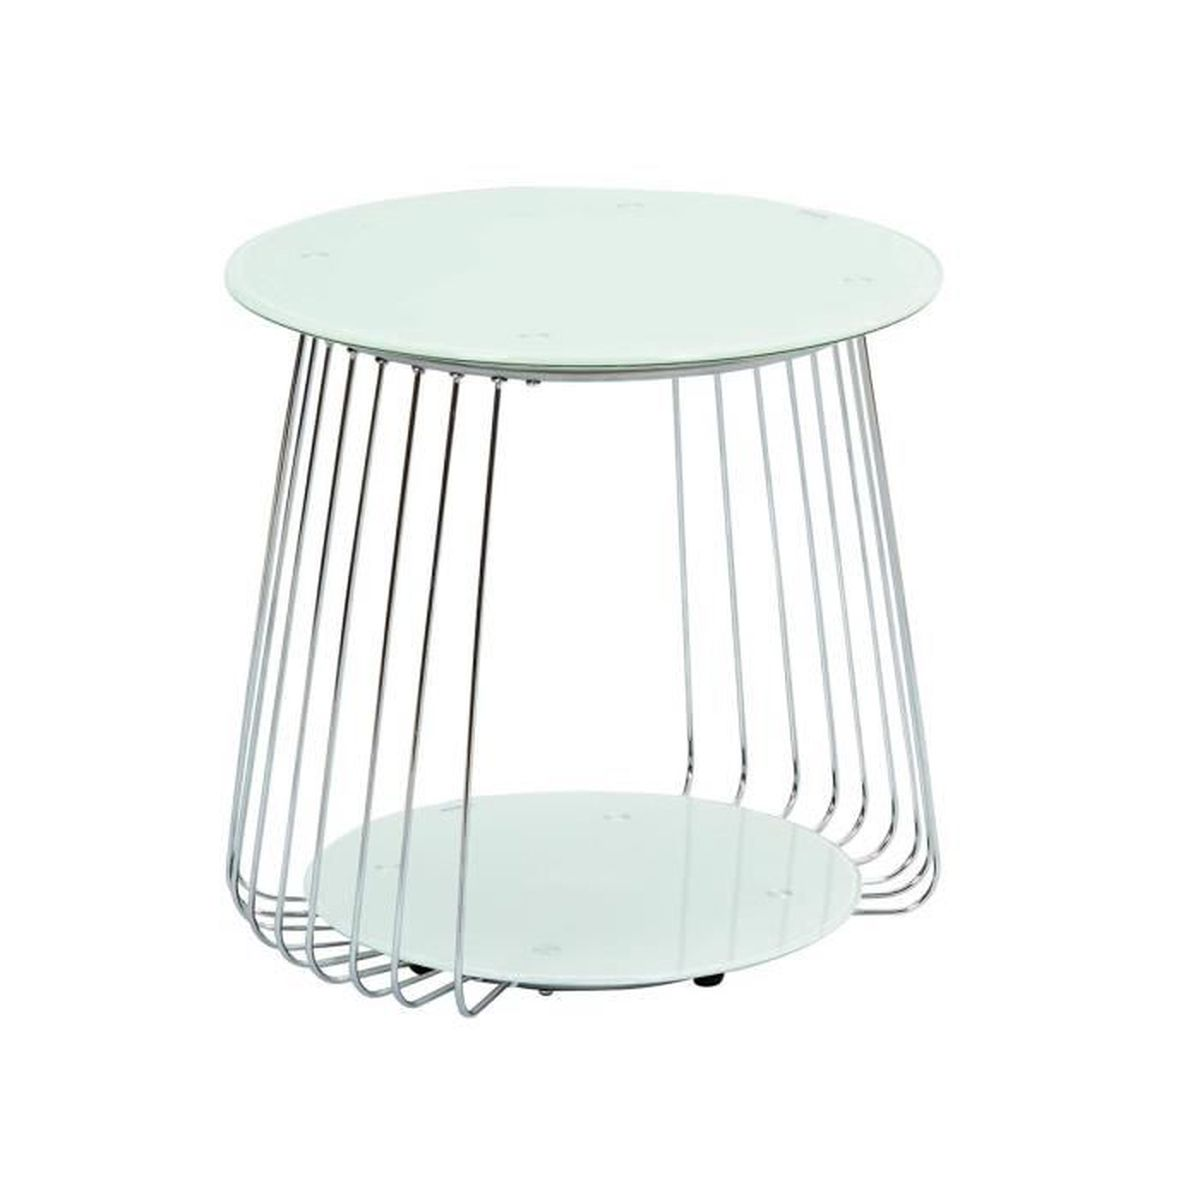 Salma 50 table basse blanche achat vente table basse salma 50 table b - Table basse blanche cdiscount ...